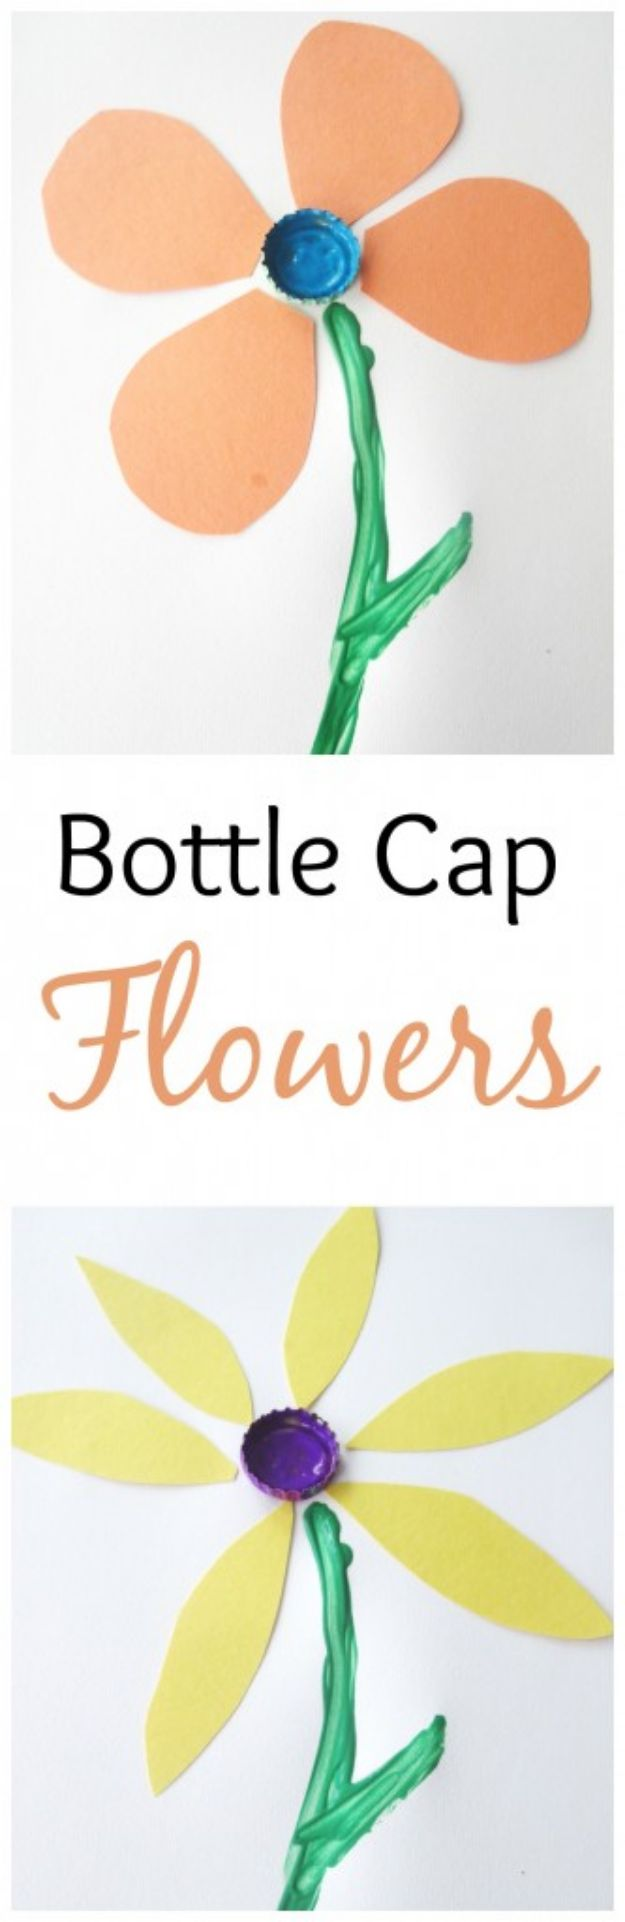 DIY Bottle Cap Crafts - Bottle Cap Flowers - Make Jewelry Projects, Creative Craft Ideas, Gift Ideas for Men, Women and Kids, KeyChains and Christmas Ornaments, Presents